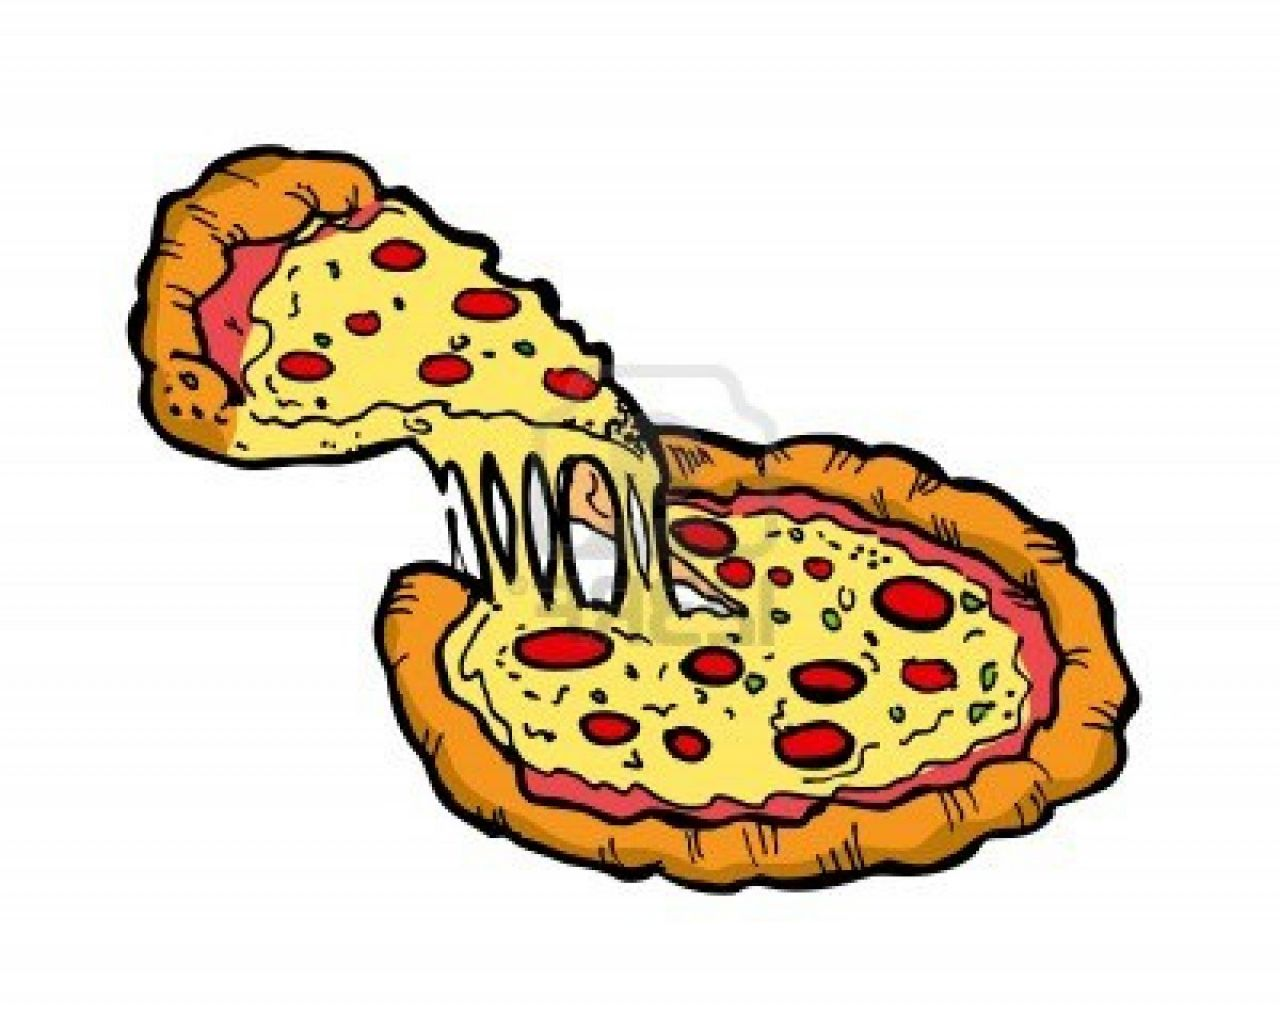 Clipart images of pizza svg library stock Pizza Pictures Cartoon | Free download best Pizza Pictures Cartoon ... svg library stock